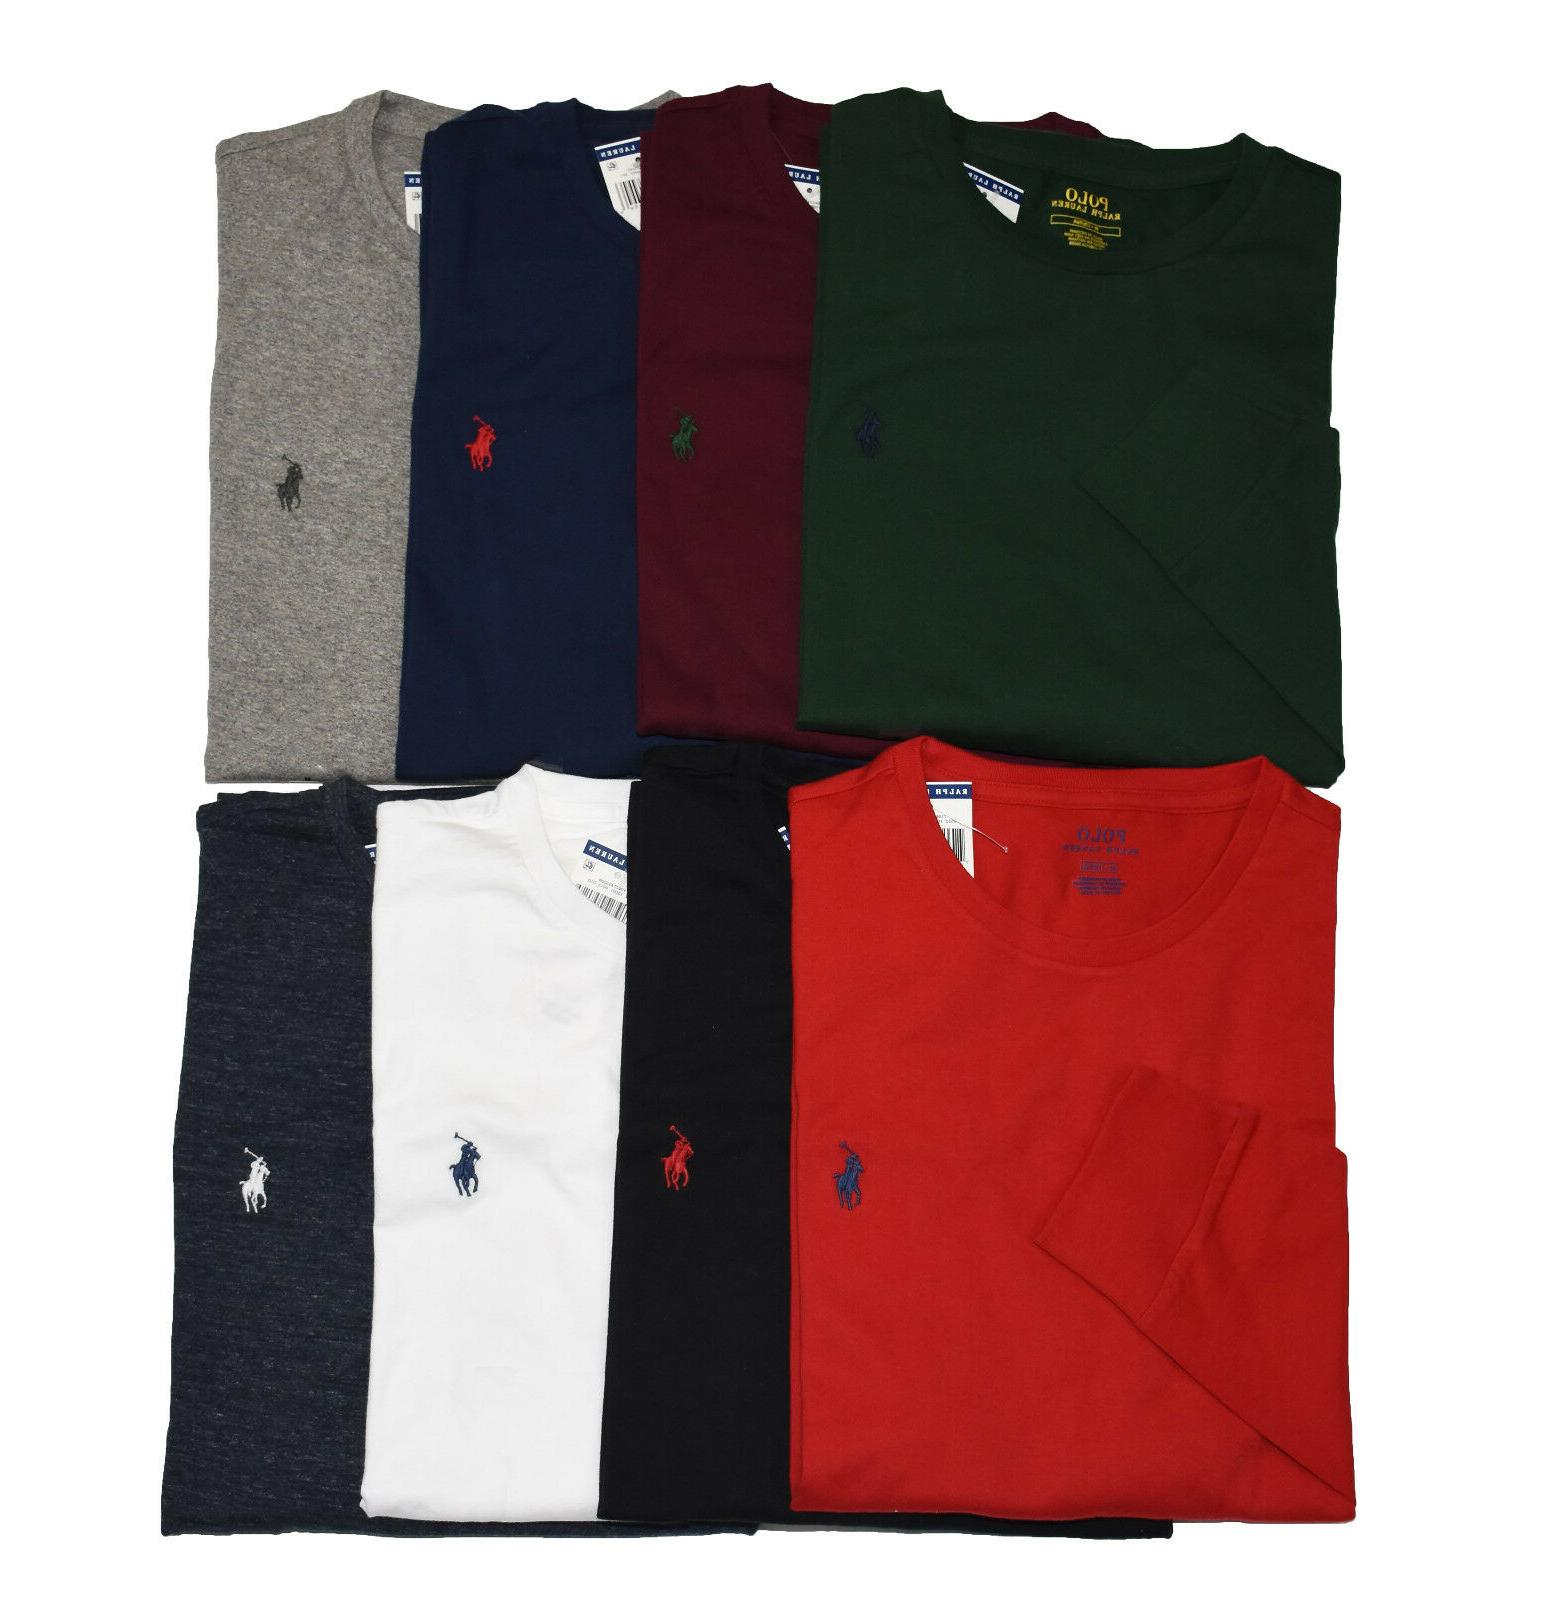 Men Polo Ralph Lauren LONG SLEEVE Crew Neck T Shirt S M L XL